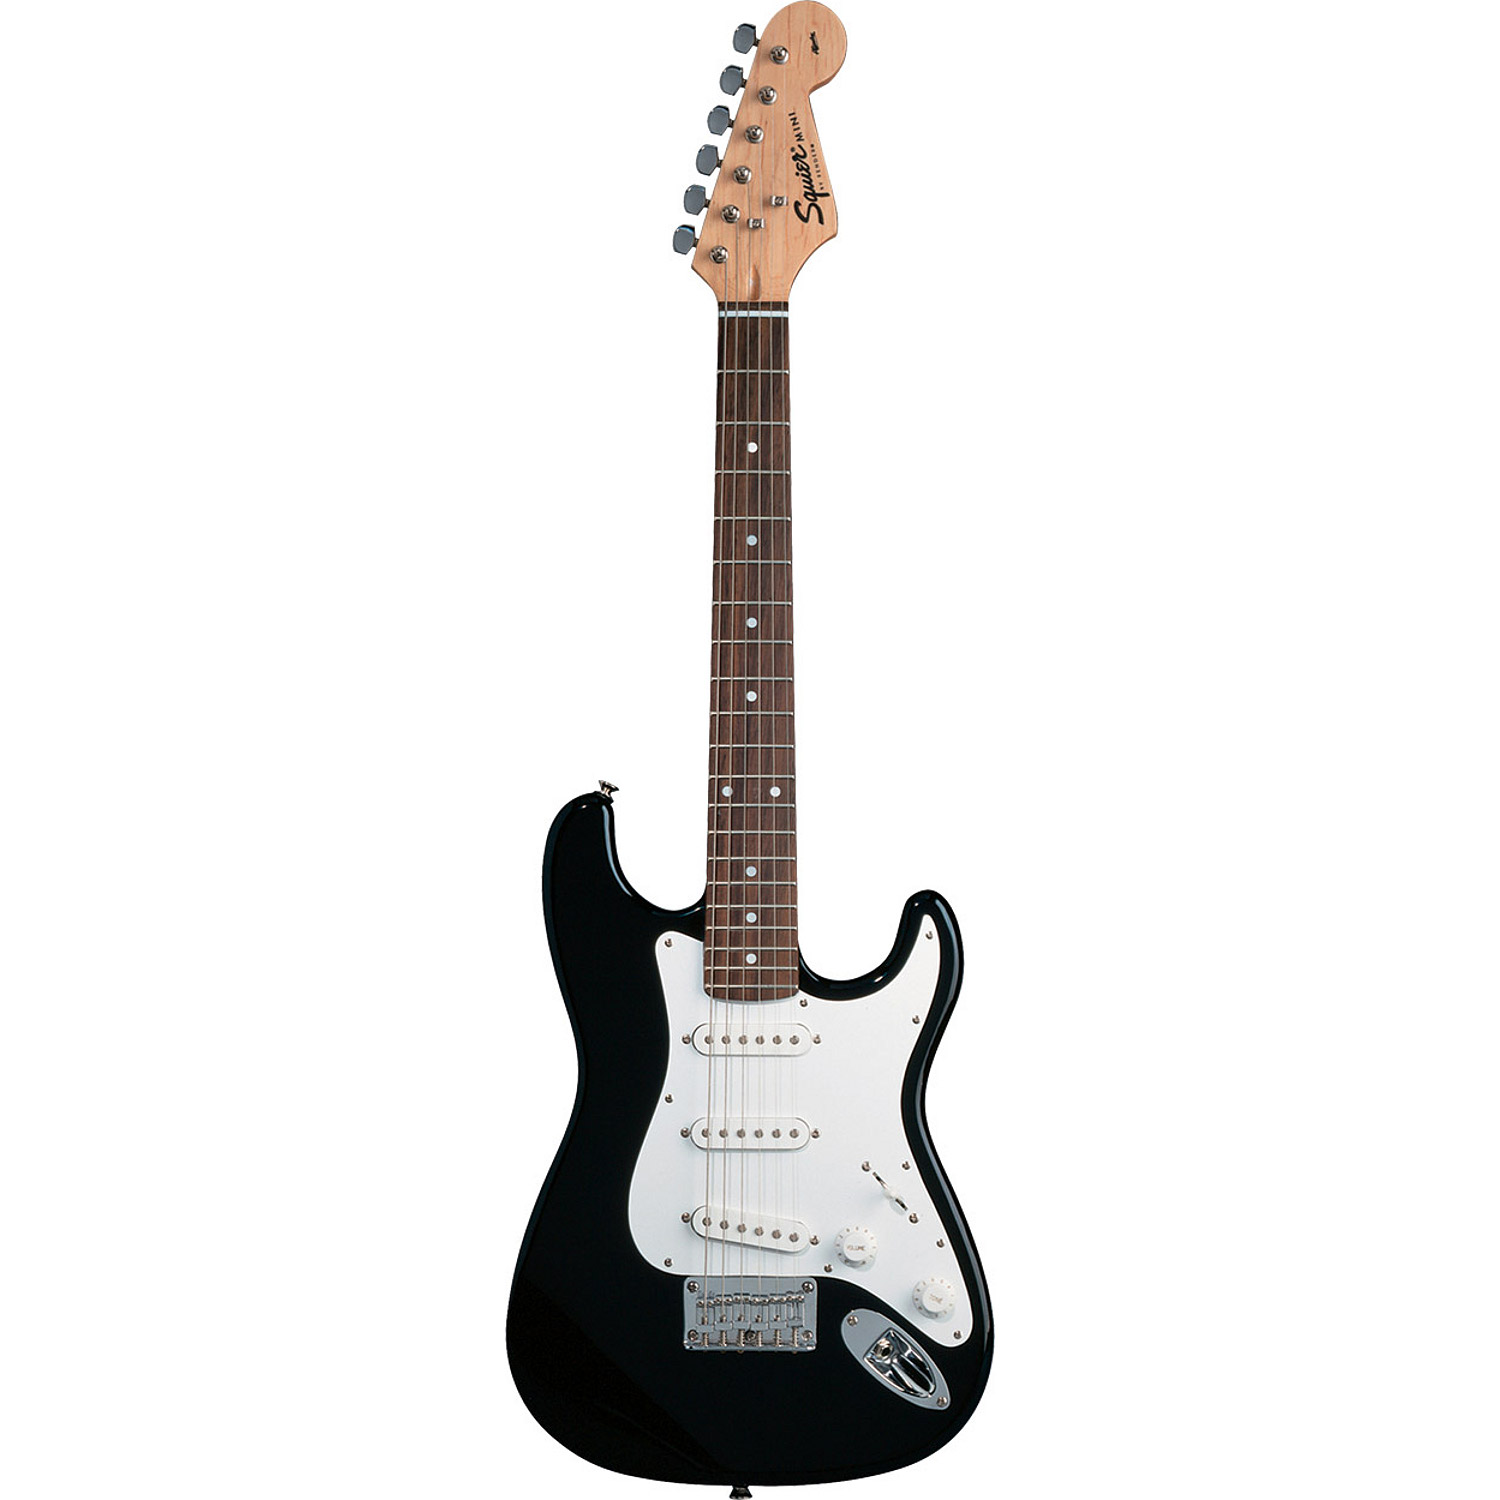 Squier_ByFender_Mini_Bullet_Strat_Black_Rw?resize\=665%2C665 eric johnson stratocaster wiring diagram switch positions fender fender no load tone control wiring diagram at aneh.co